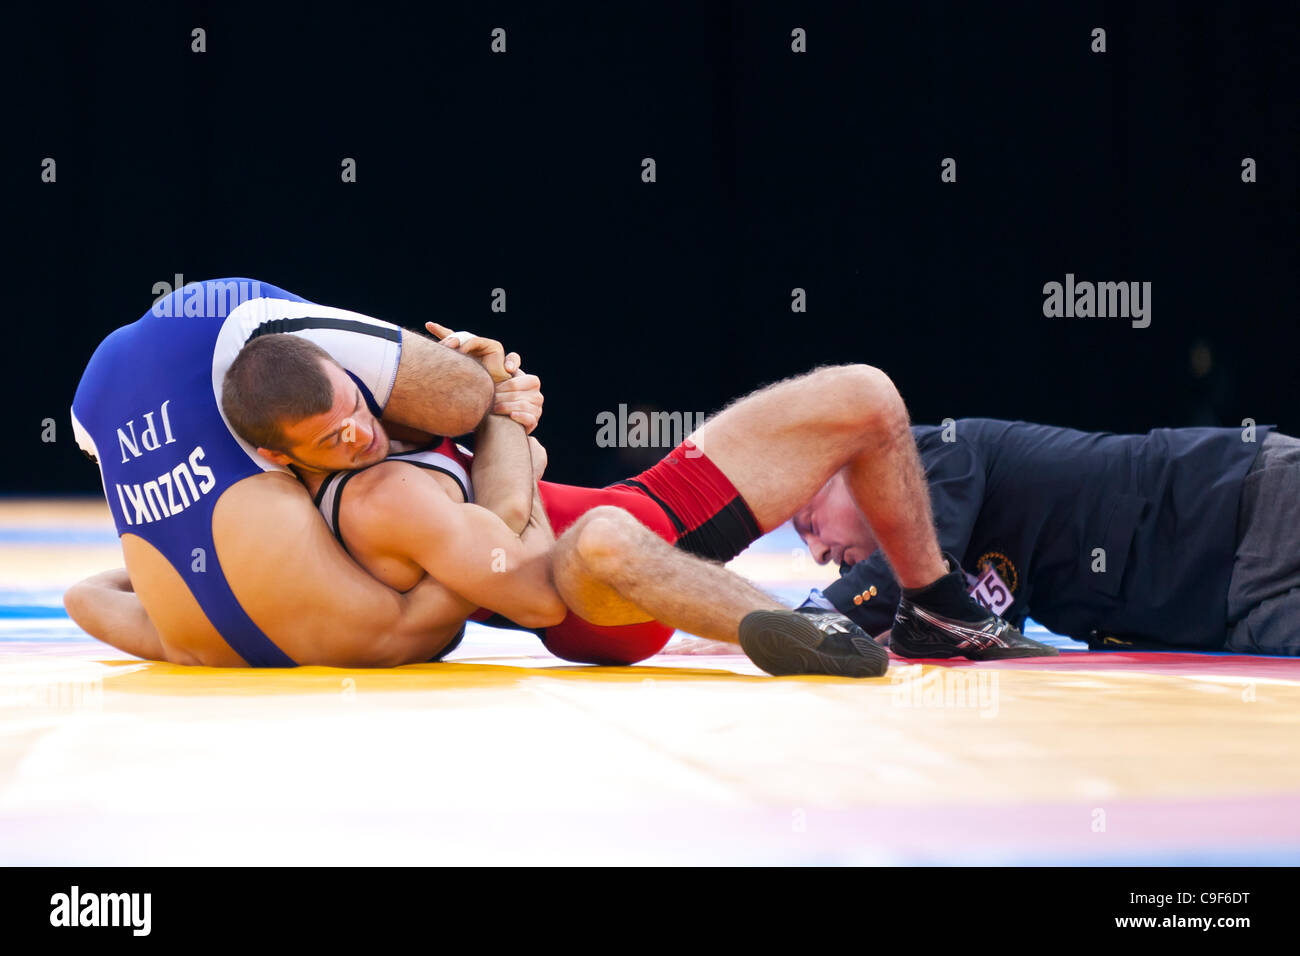 Y SUZUKI of Japan  v RW HUMPHREY of USA in the Men's Bronze 60kg Freestyle Wrestling, London Prepares Wrestling Stock Photo